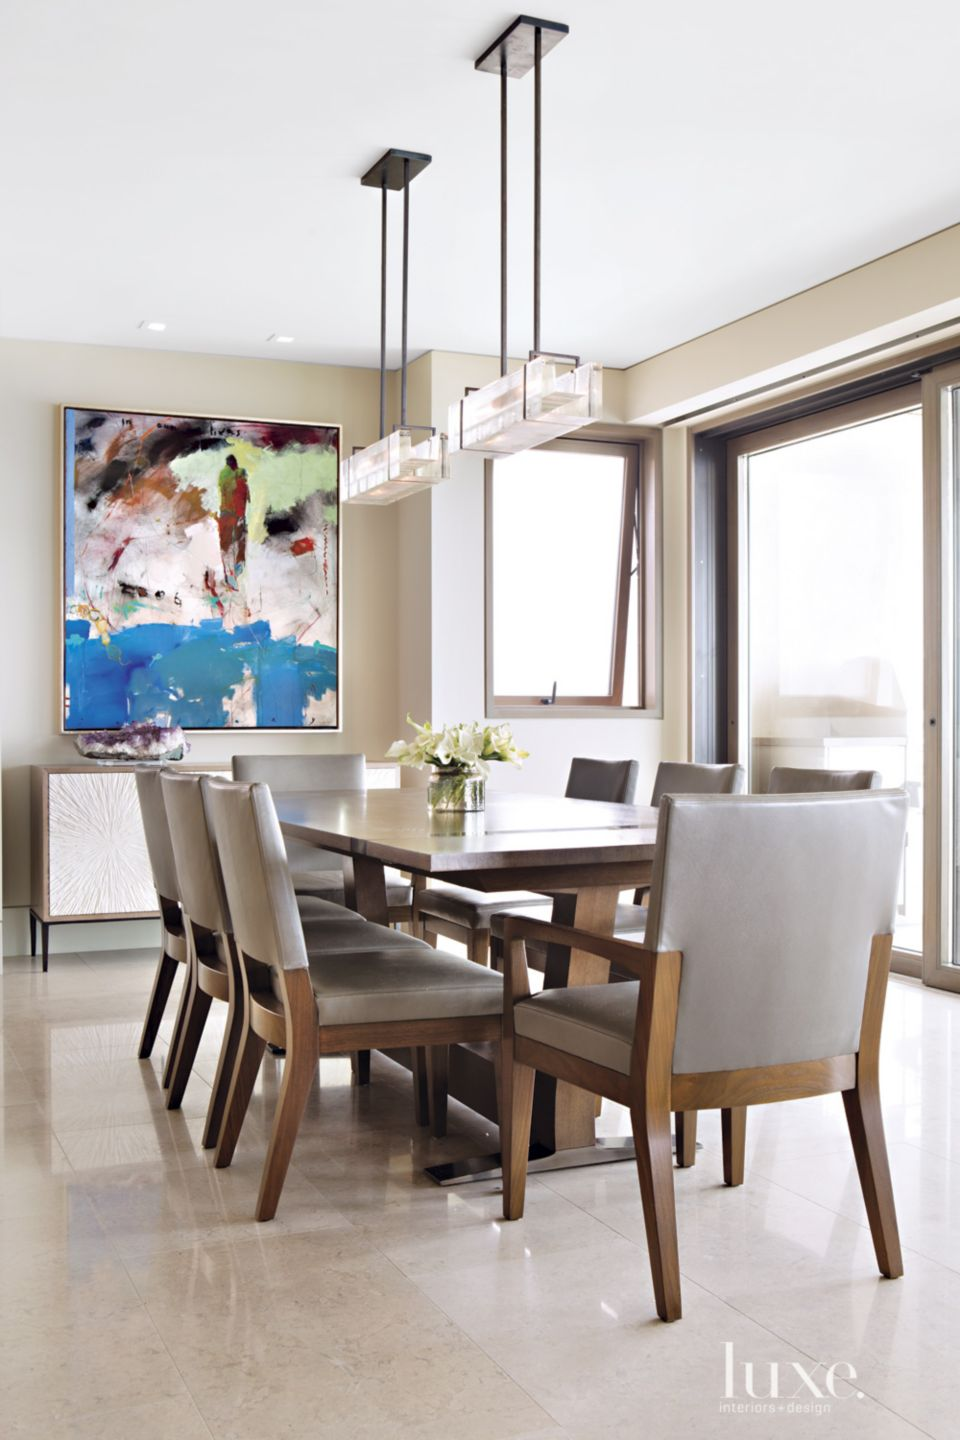 Contemporary Neutral Dining Area with Chris Gwaltney Artwork